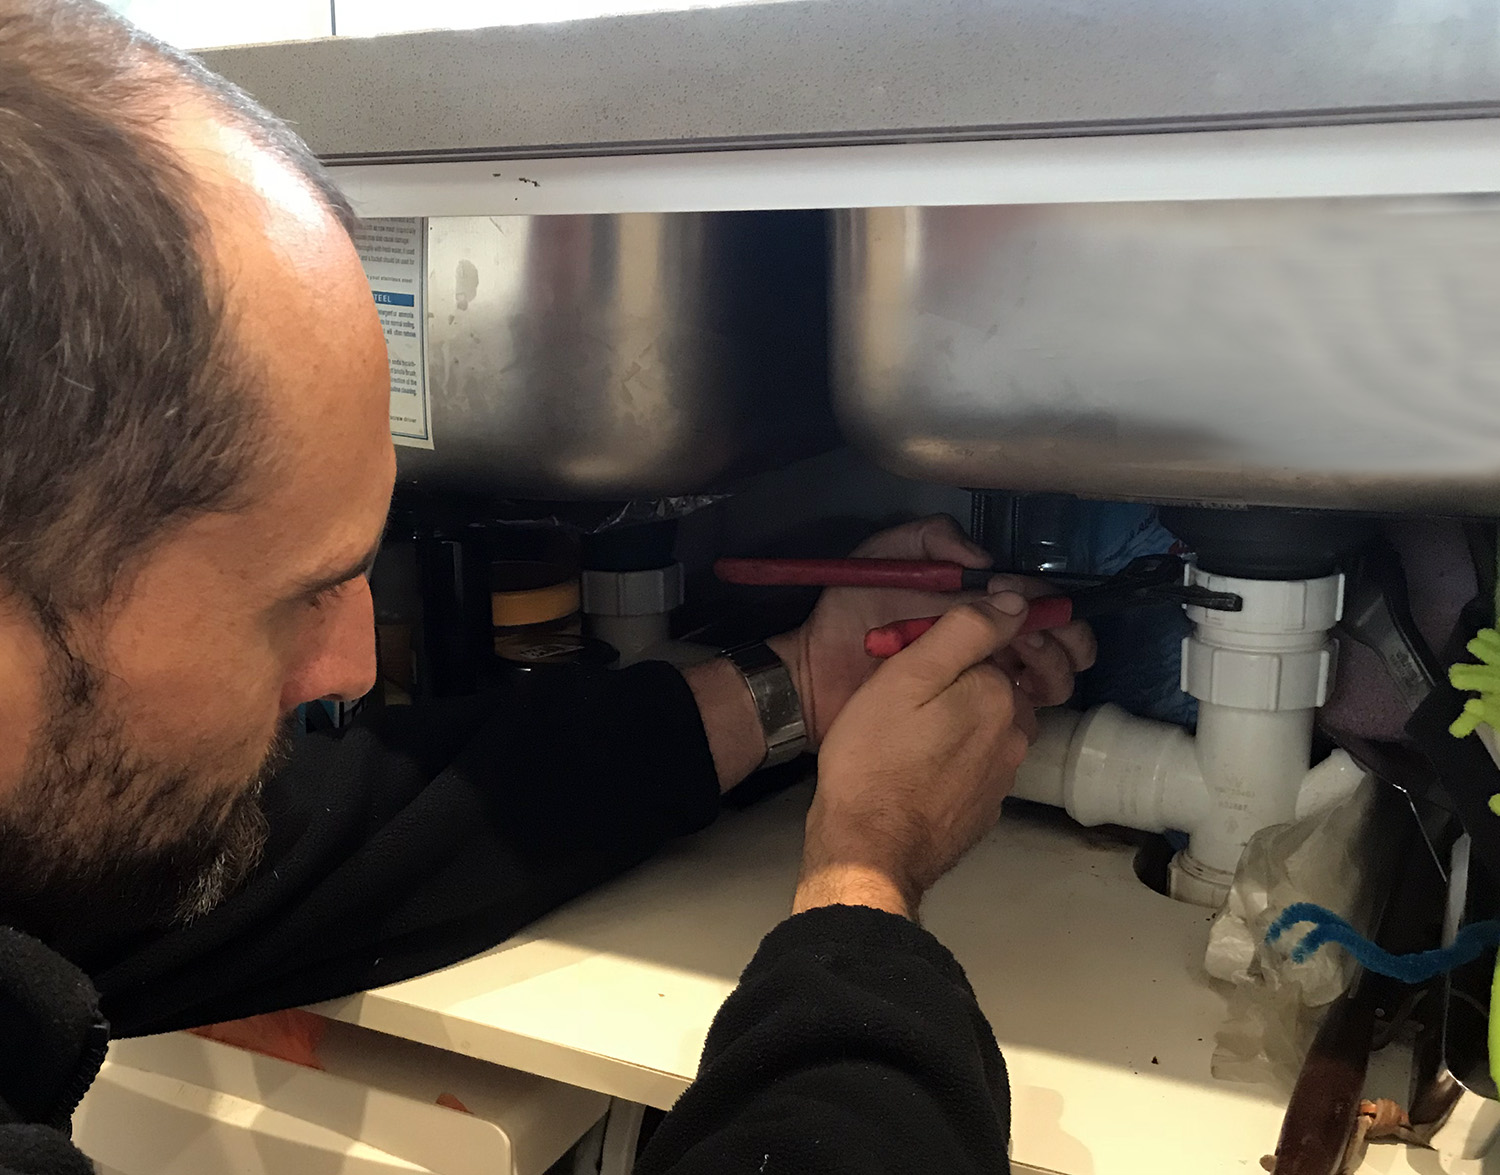 Whether it's a leaking tap, a running toilet, a blocked drain or a hole in the roof, the team at Dave's h2o Plumbing Solutions will be able to assist with all of your plumbing needs.